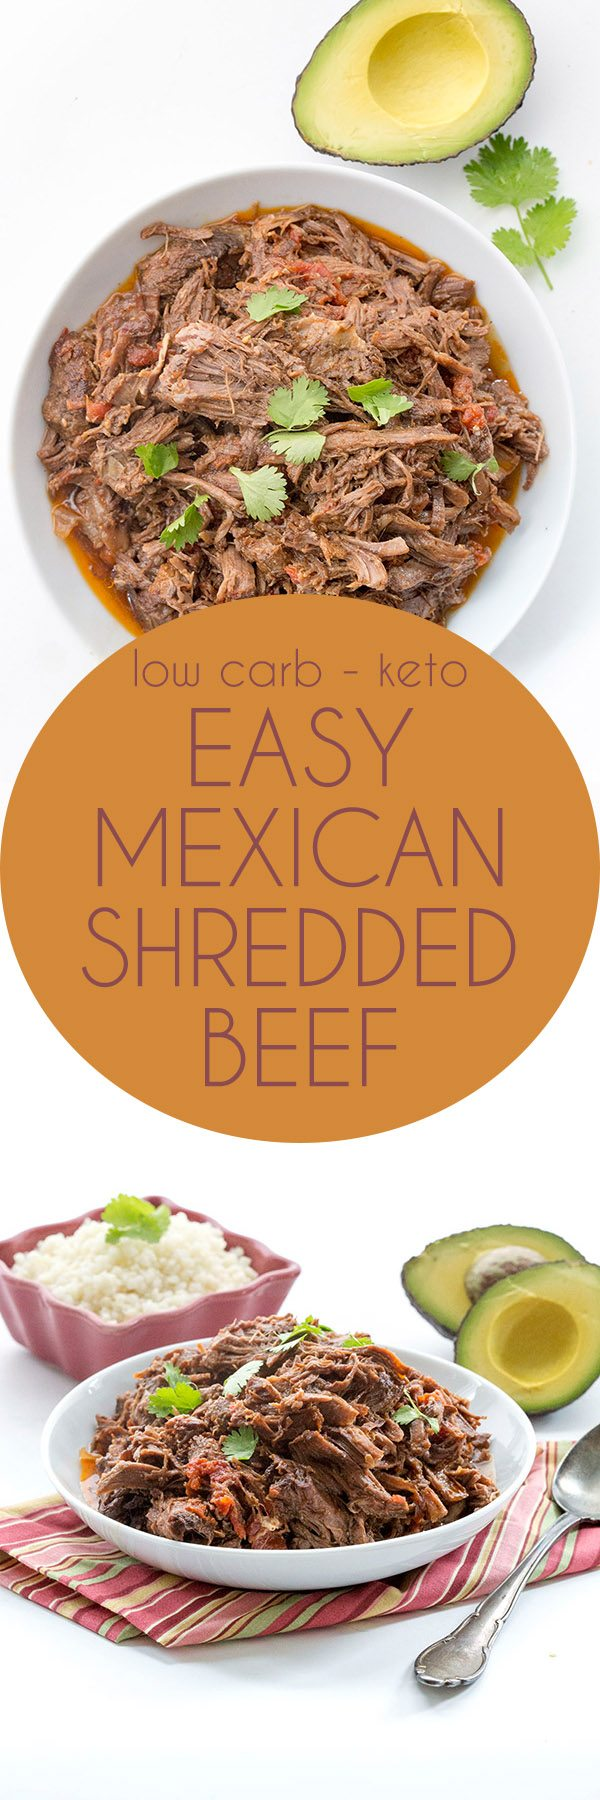 Easy keto dinner recipe, this low carb shredded Mexican Beef is bound to be a hit with the whole family. Paleo and dairy-free.